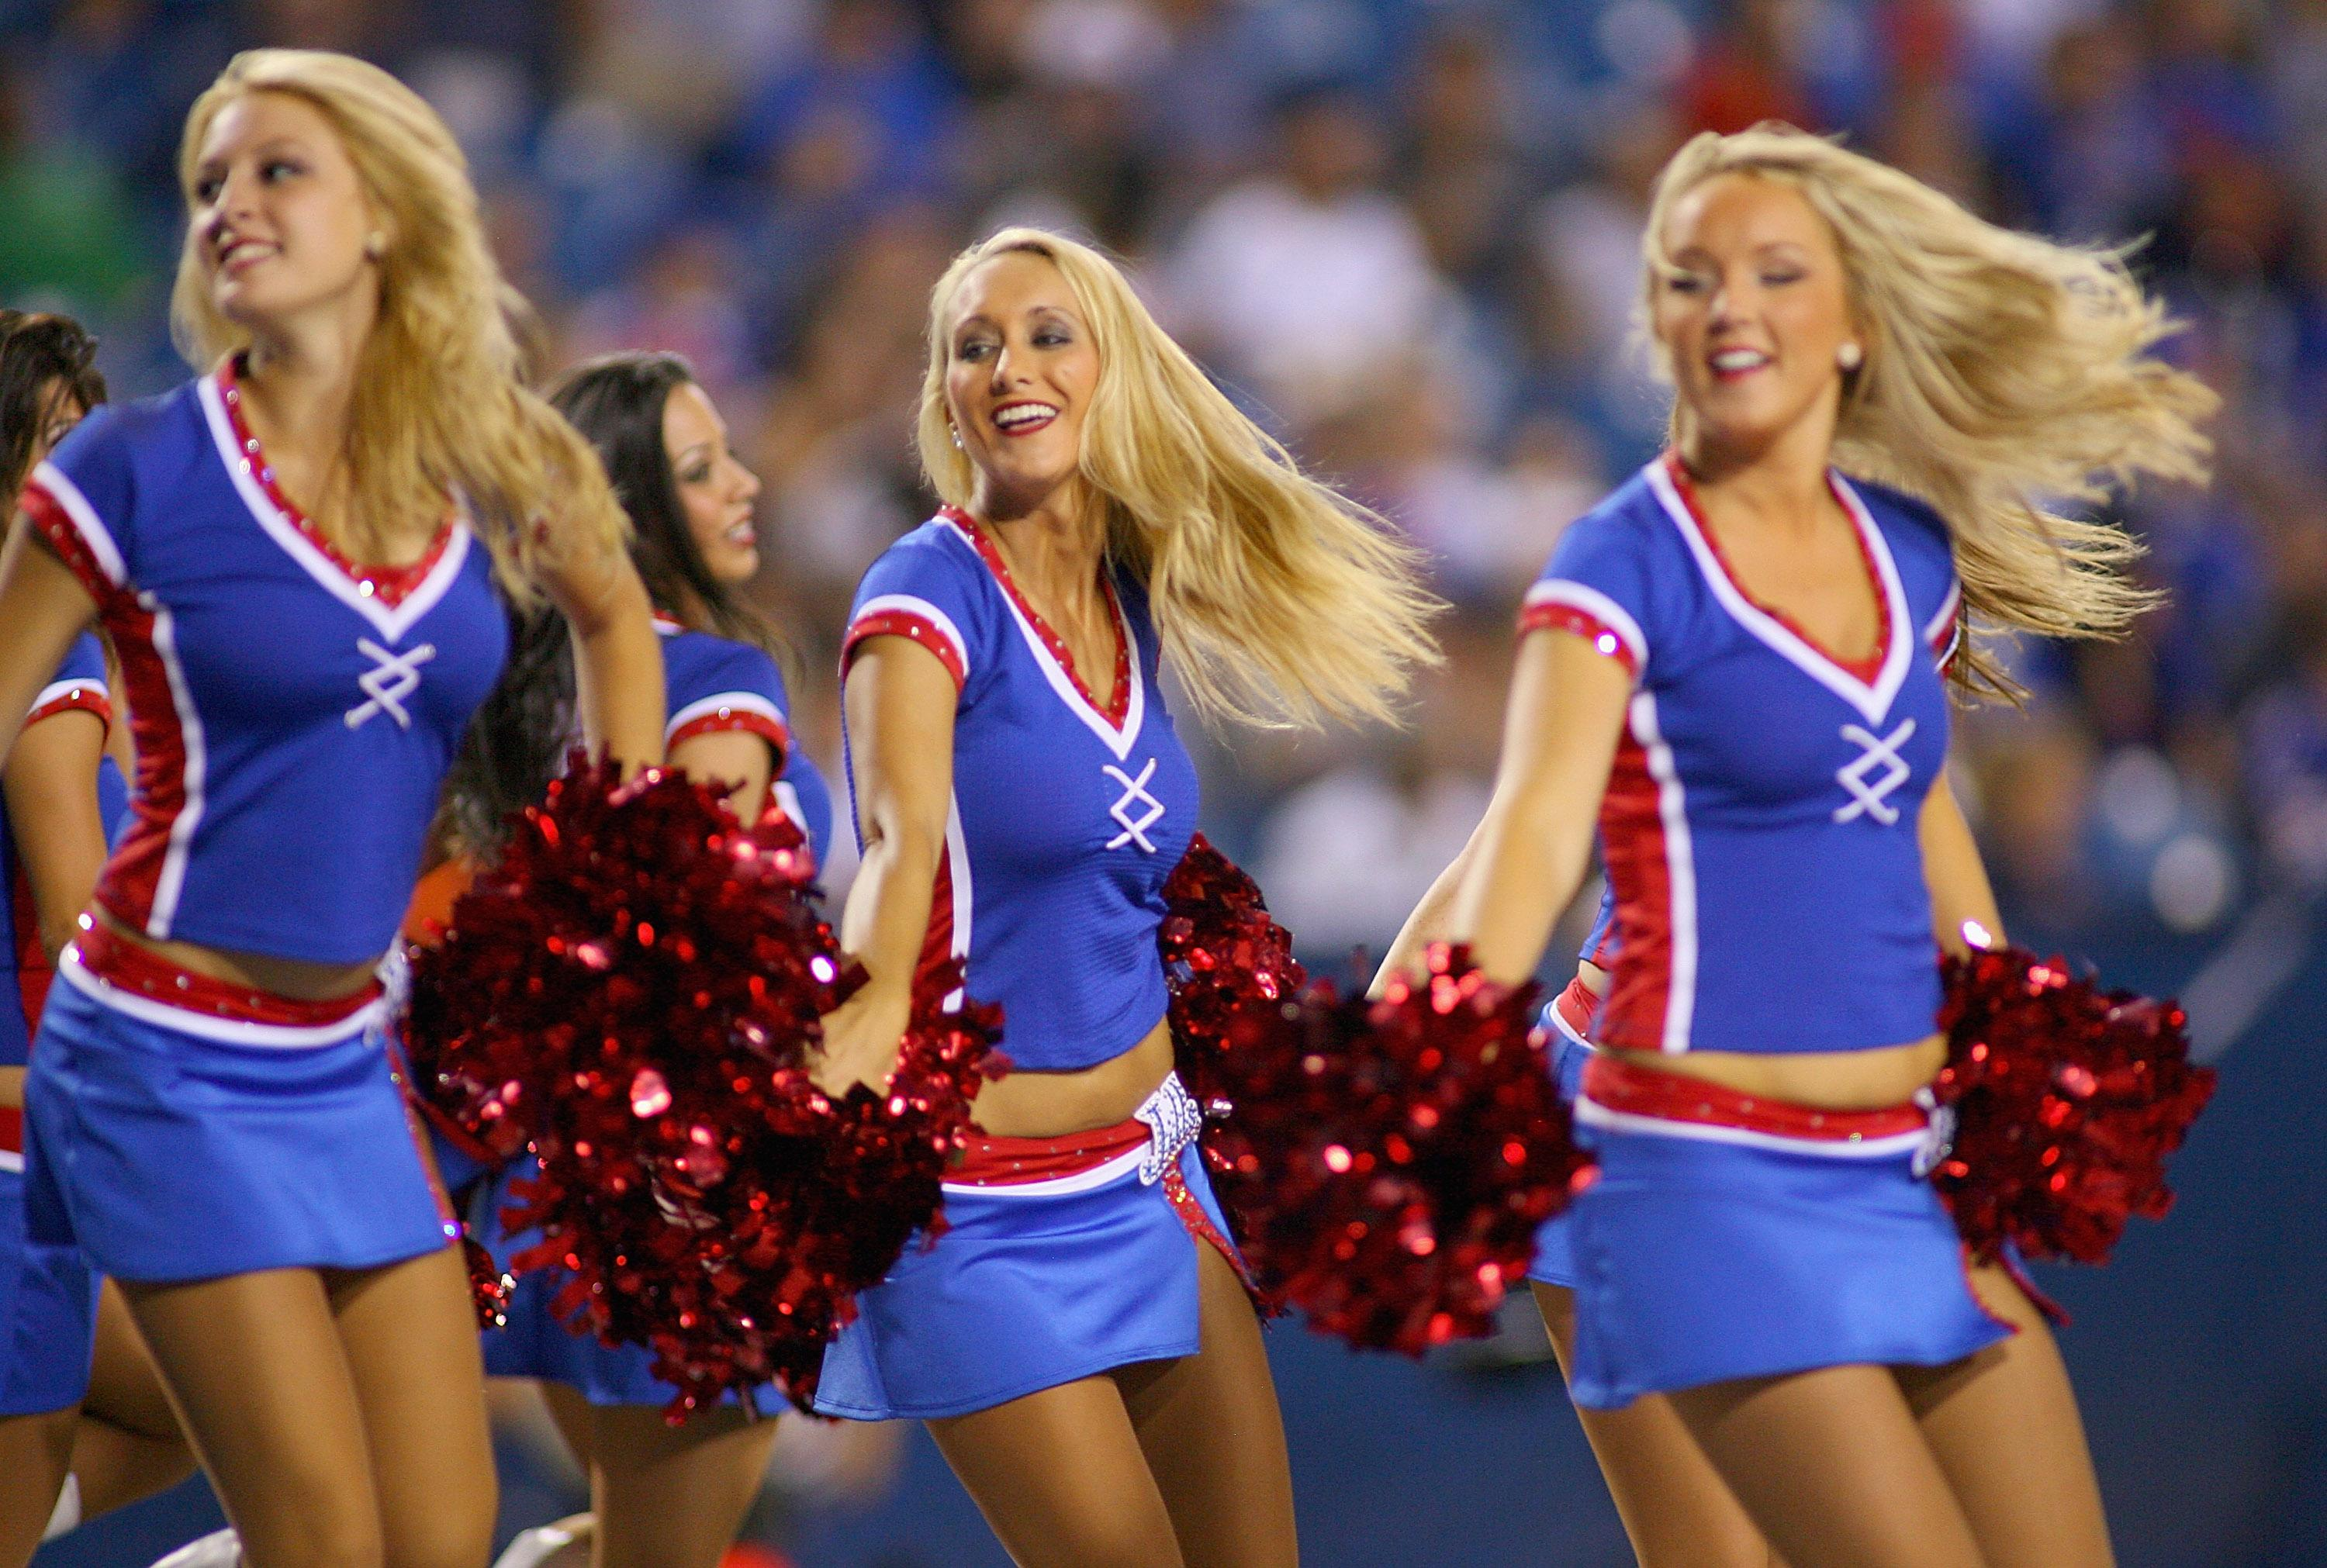 Buffalo Bills Jills cheerleaders